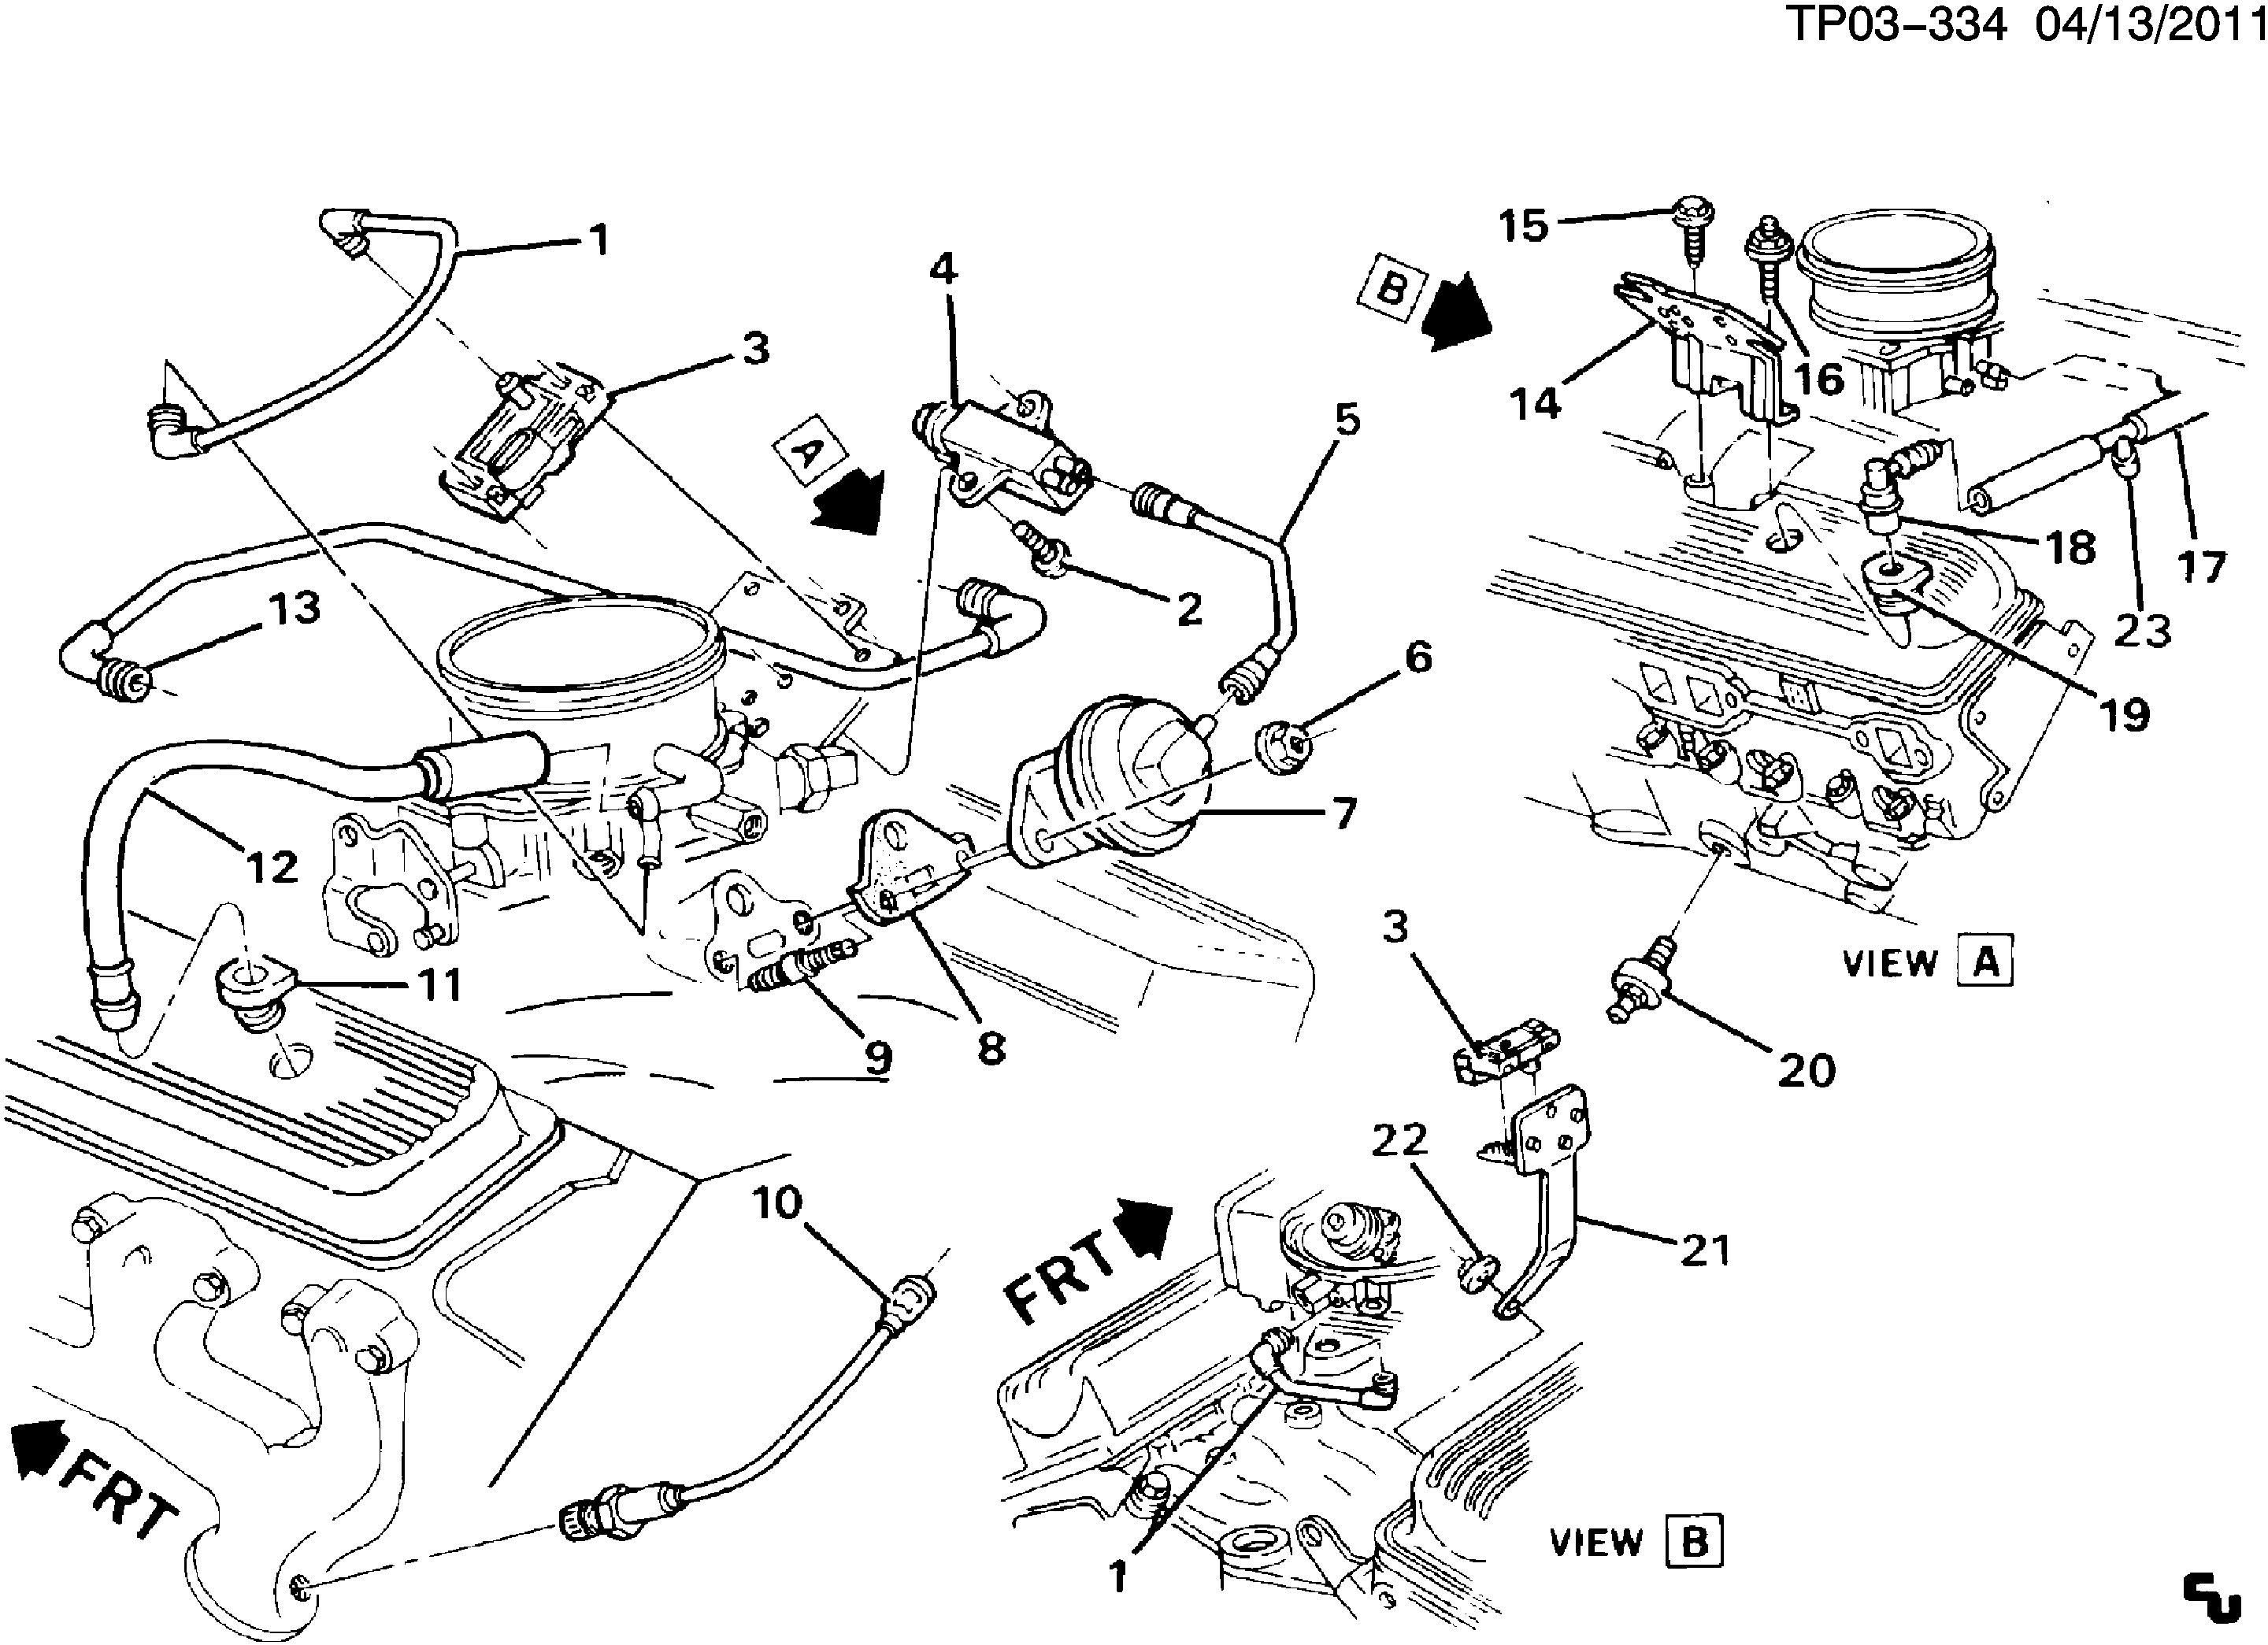 5 3l engine diagram owner manual \u0026 wiring diagram Chevy 4.3 Engine Diagram